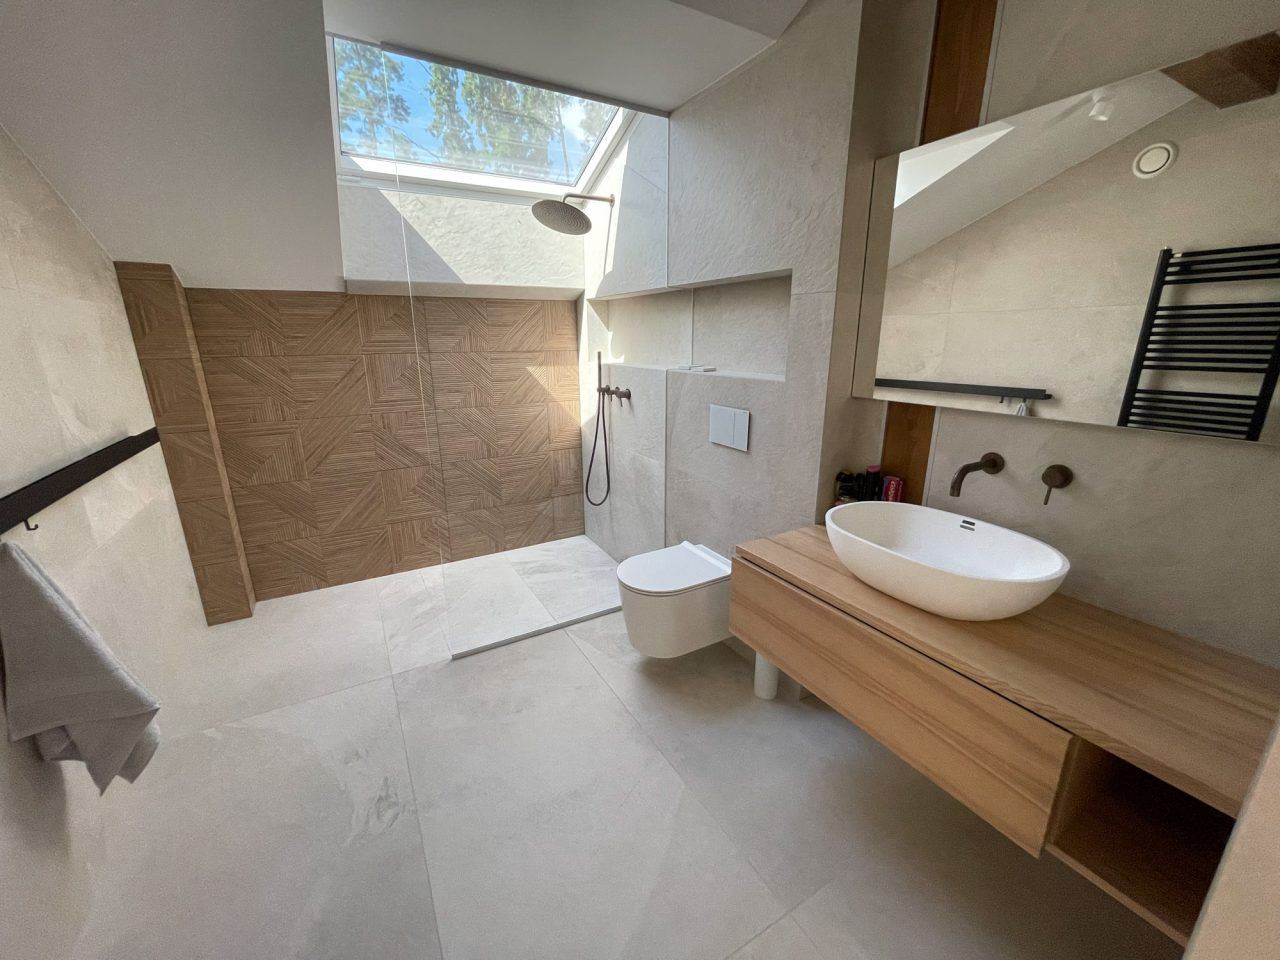 Hlass_house_KAGER - Hurii_25